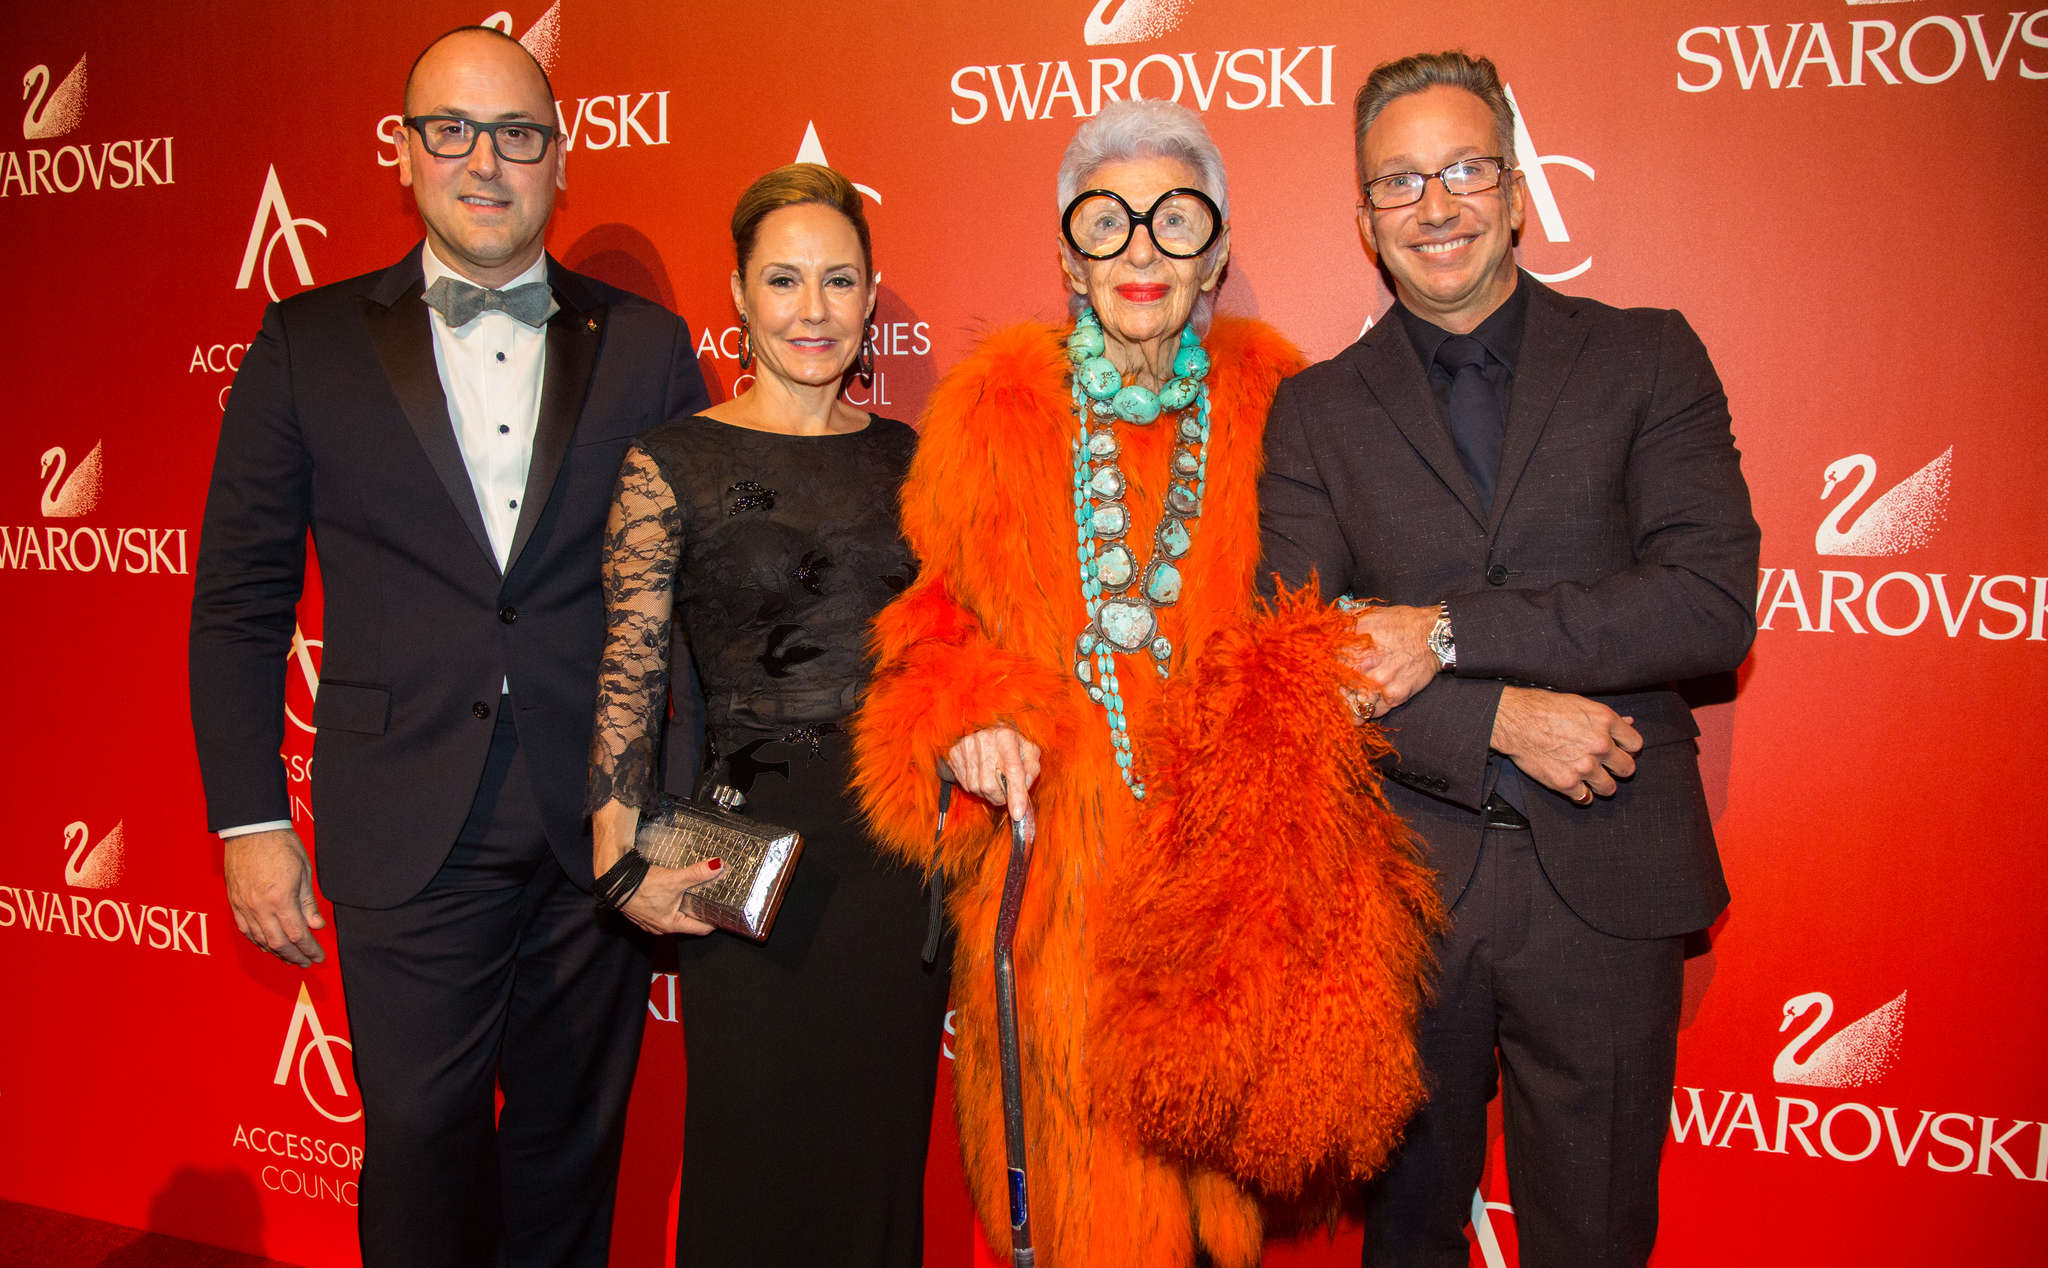 At the event are (from left) Accessories Council board chairman Frank Zambrelli, board president Karen Giberson, accessories icon Iris Apfel, and her companion.